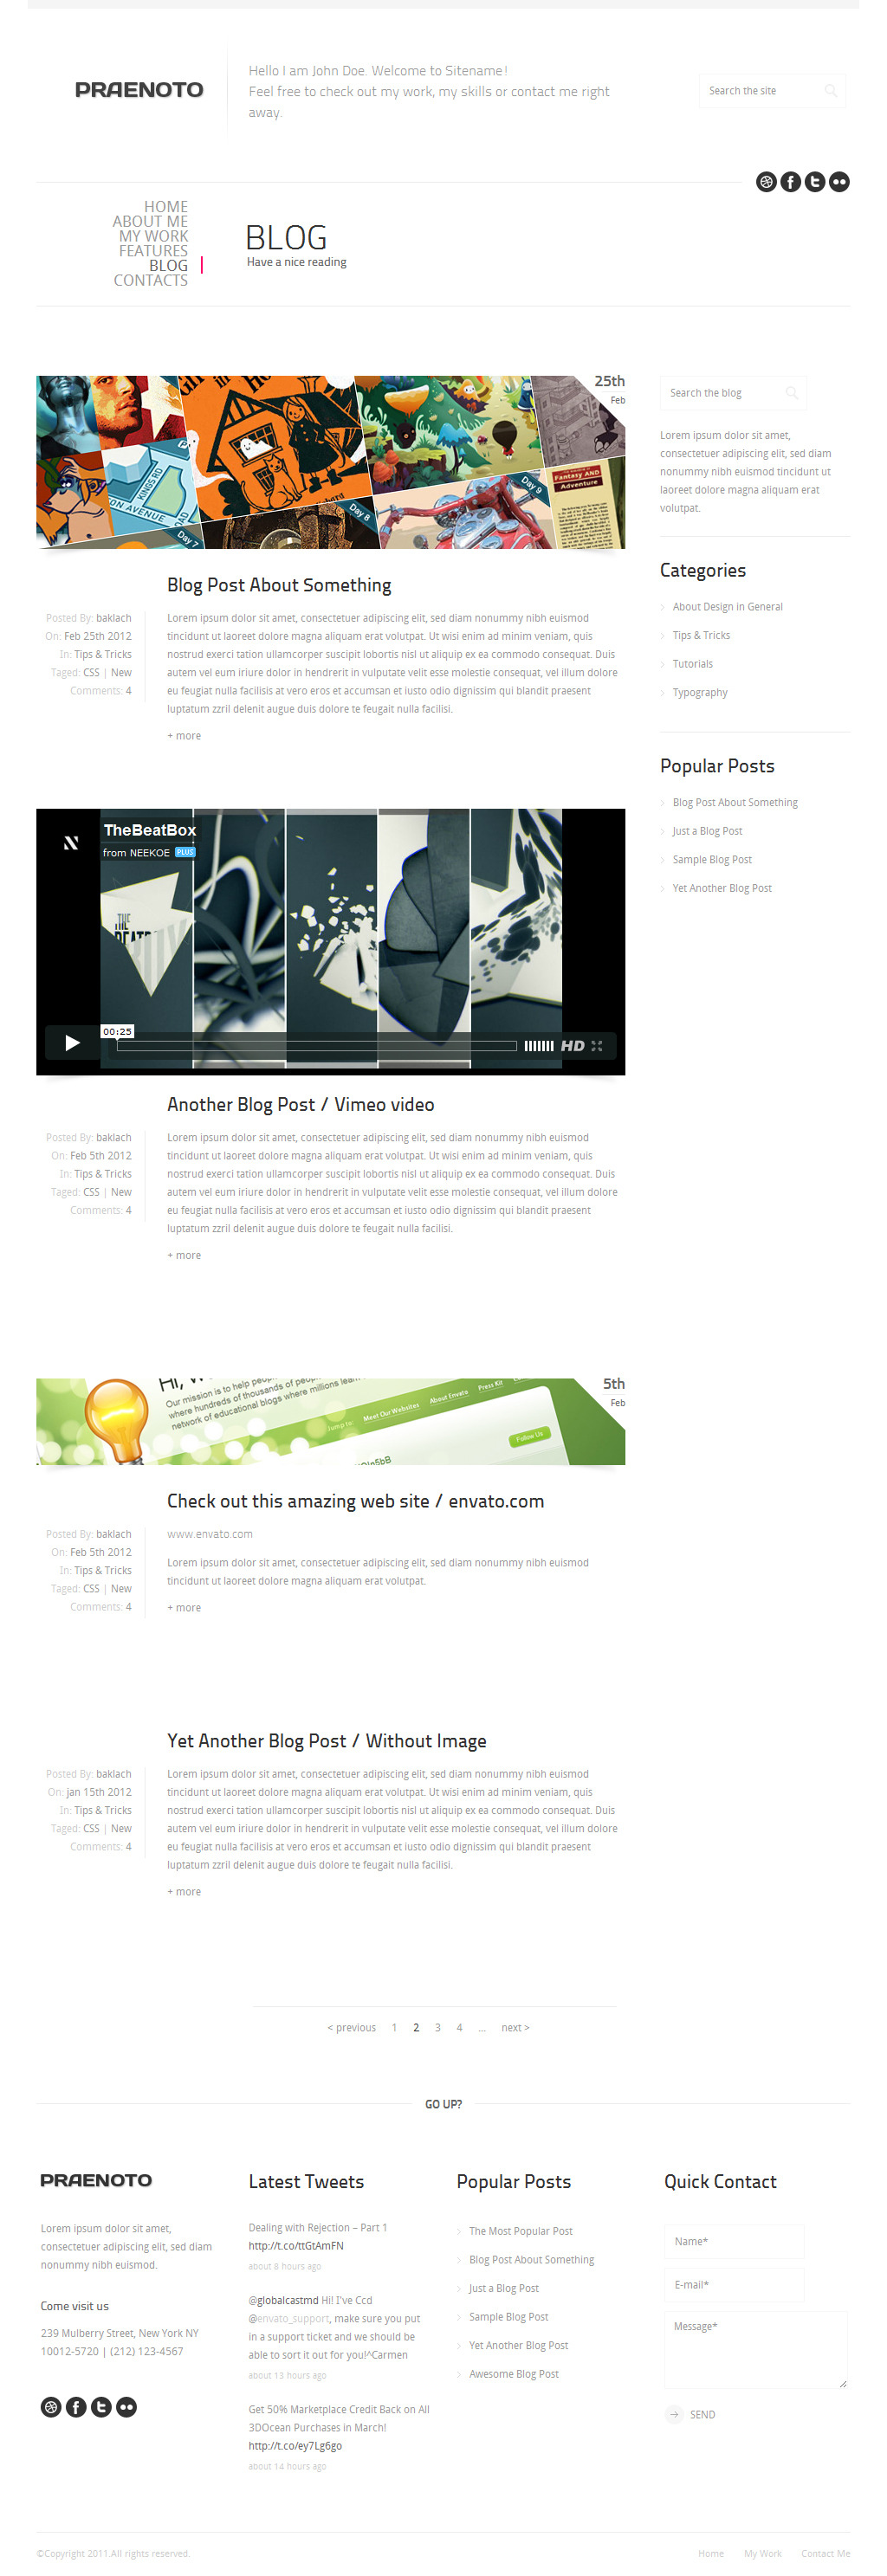 Praenoto - Clean & Minimalist Web Site Template - Screenshot 2. Blog page.